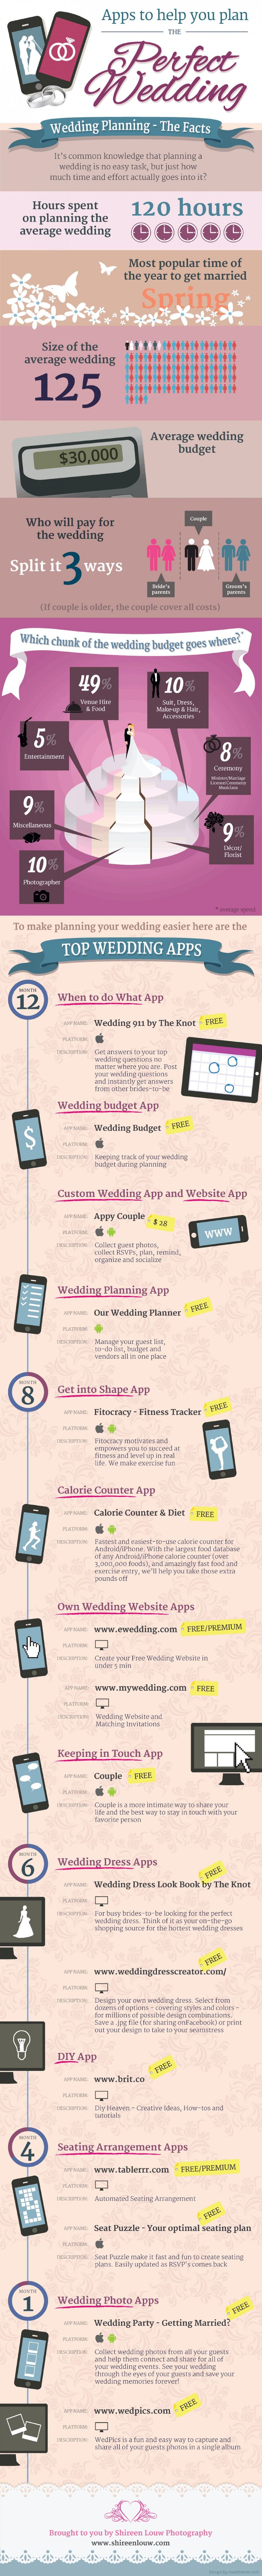 "When it comes to planning your own Jewish wedding, invitations differ a bit from traditional word usages. You use ""and"" instead of ""to"" between the bride and grooms name. If you are planning a Roman Catholic mass as a part of the ceremony, invitations should refer to the guests ""participating in the offering of a"